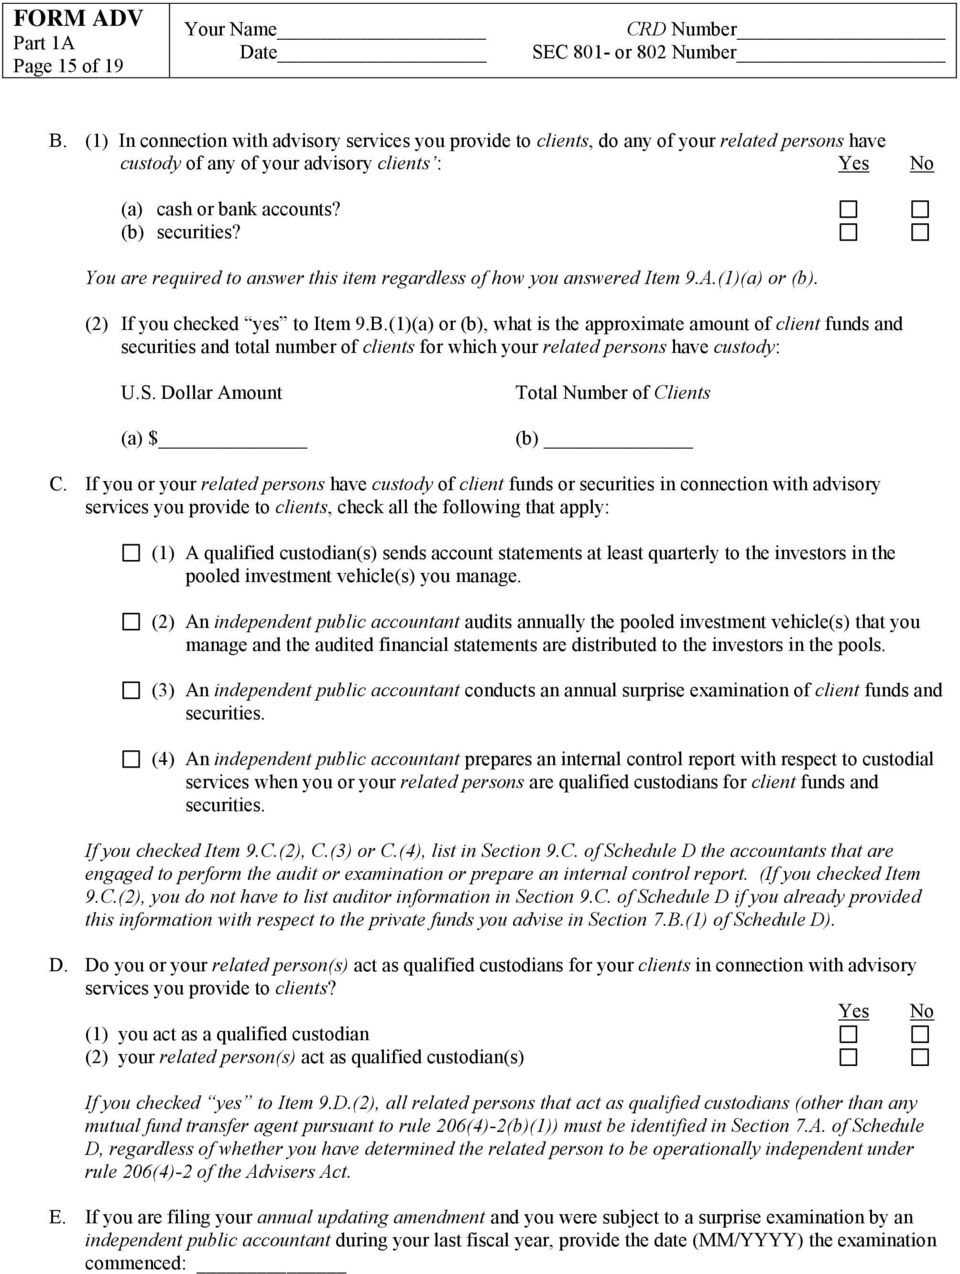 You are required to answer this item regardless of how you answered Item 9.A.(1)(a) or (b). (2) If you checked yes to Item 9.B.